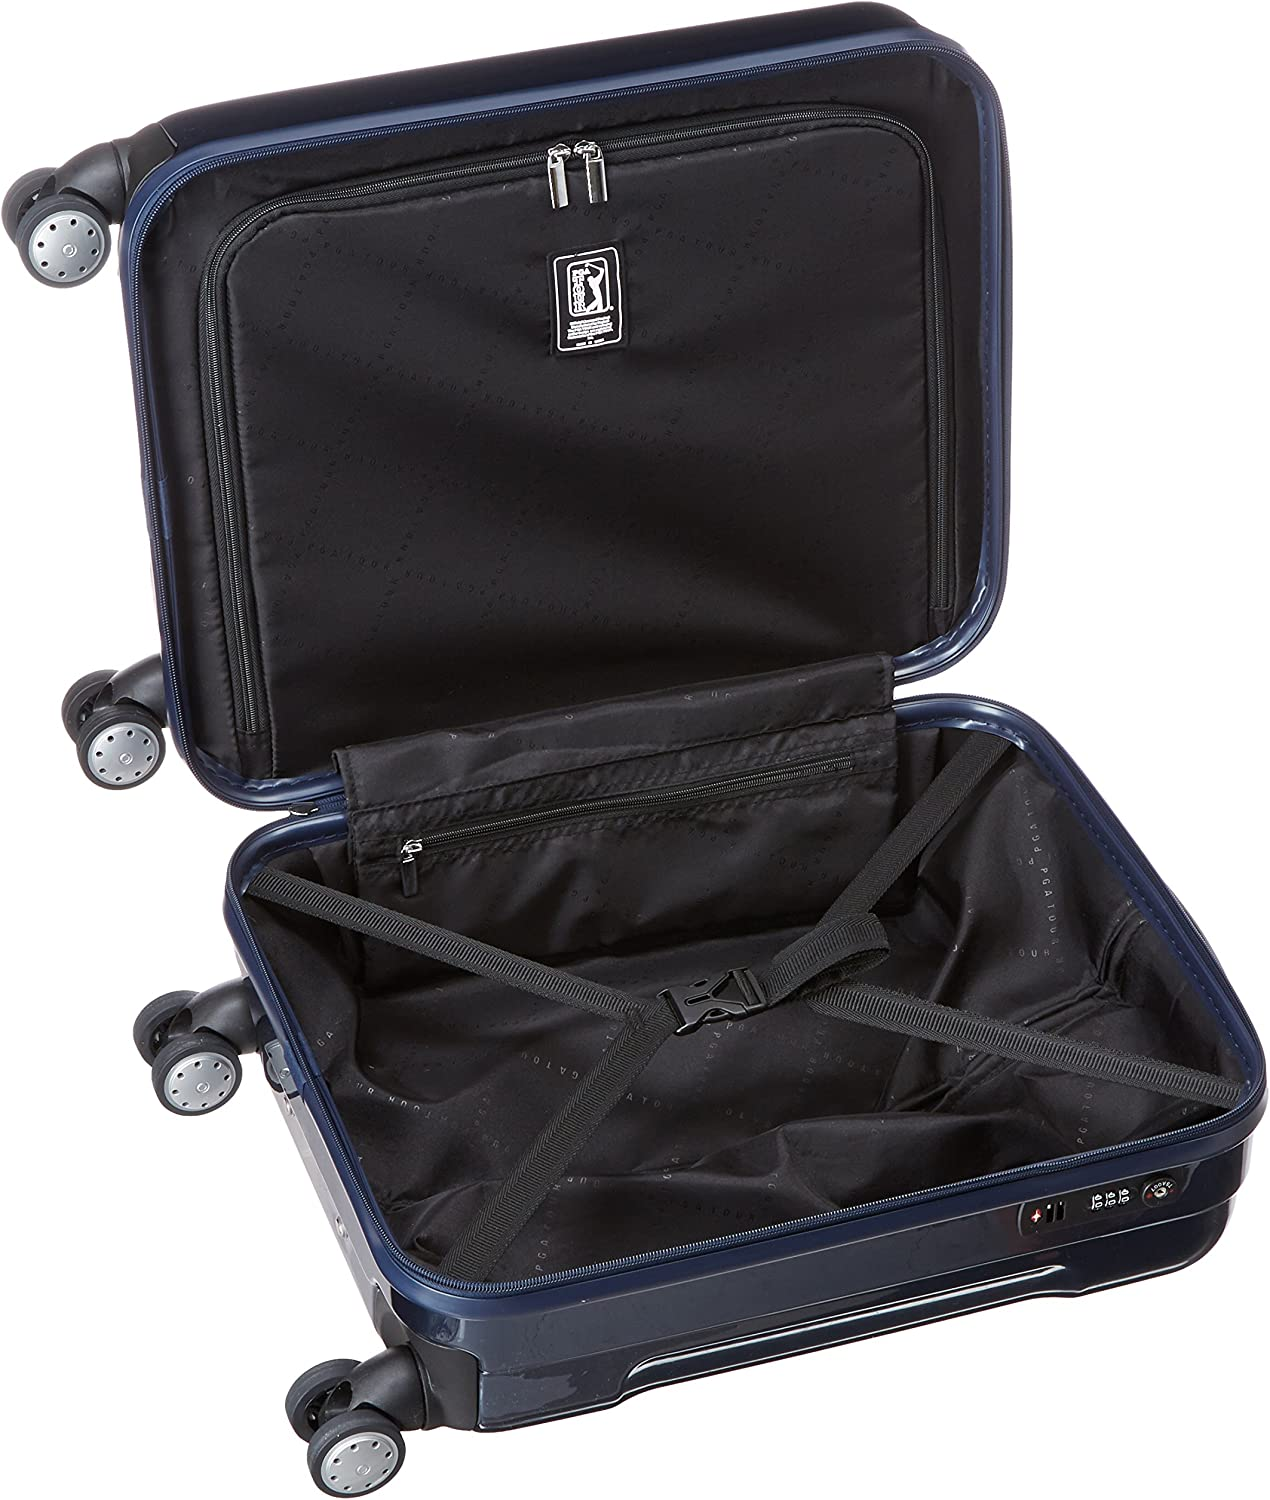 One Size PGA Tour Hard Case Spinner Luggage 20 Inch Carry-On Navy